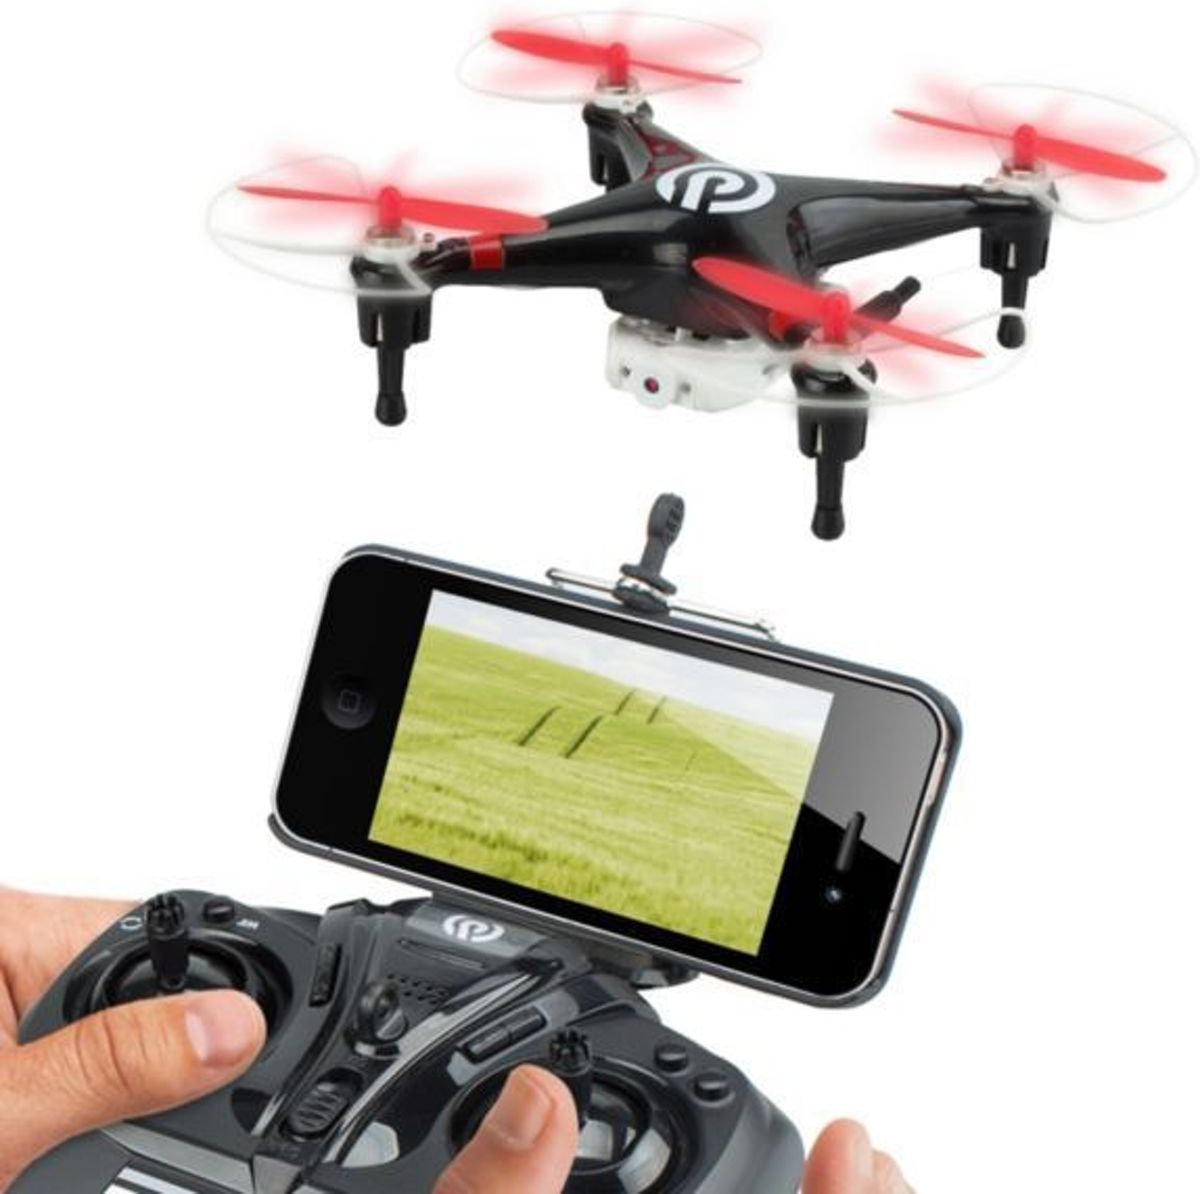 NINETEC SPYFORCE1 video drone live uitzending Smartphone IOS Android